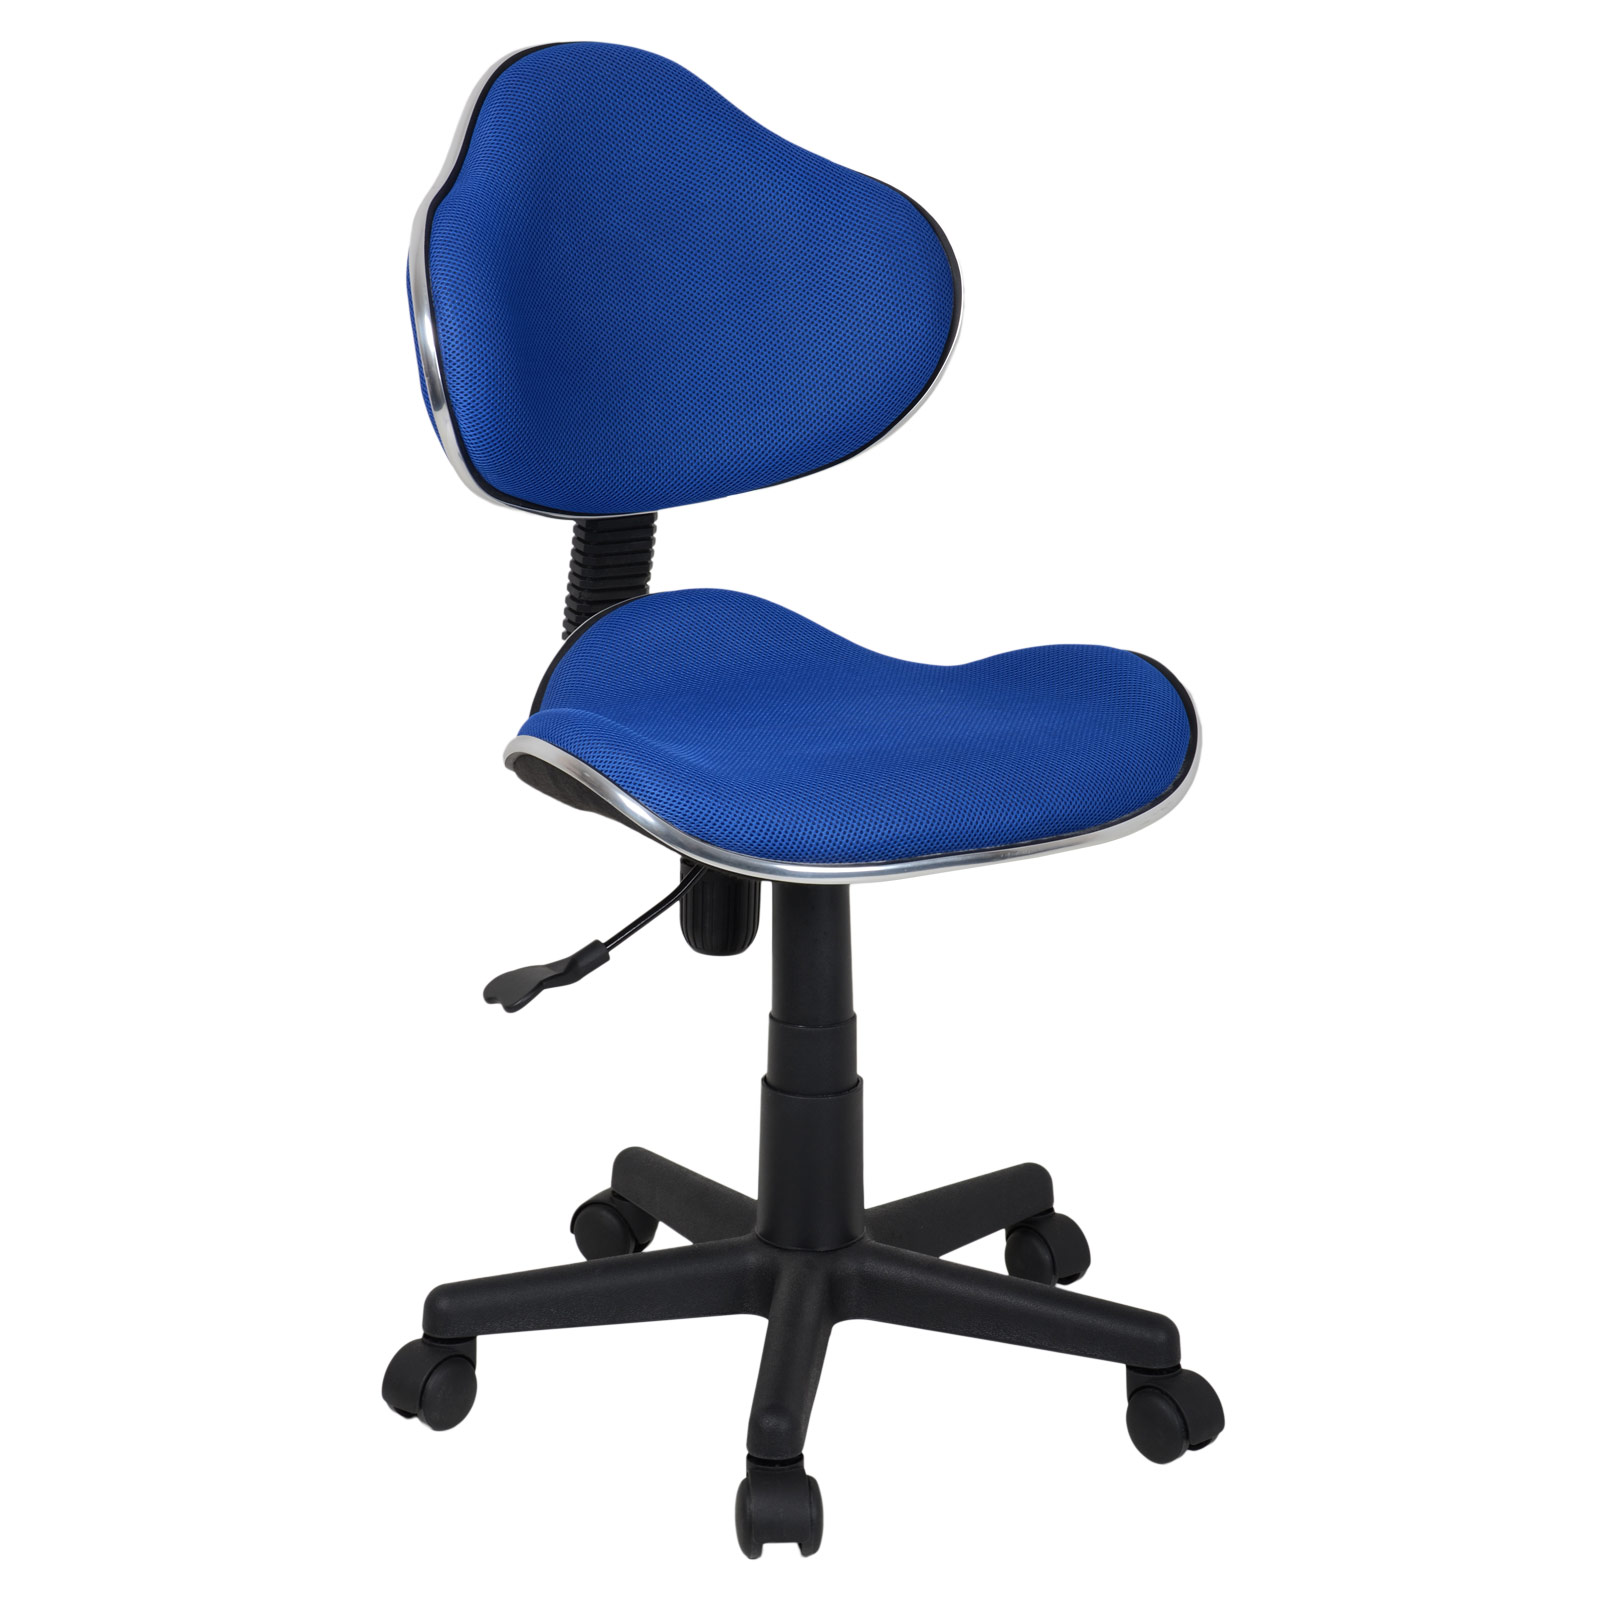 Comfortable Chairs For Studying